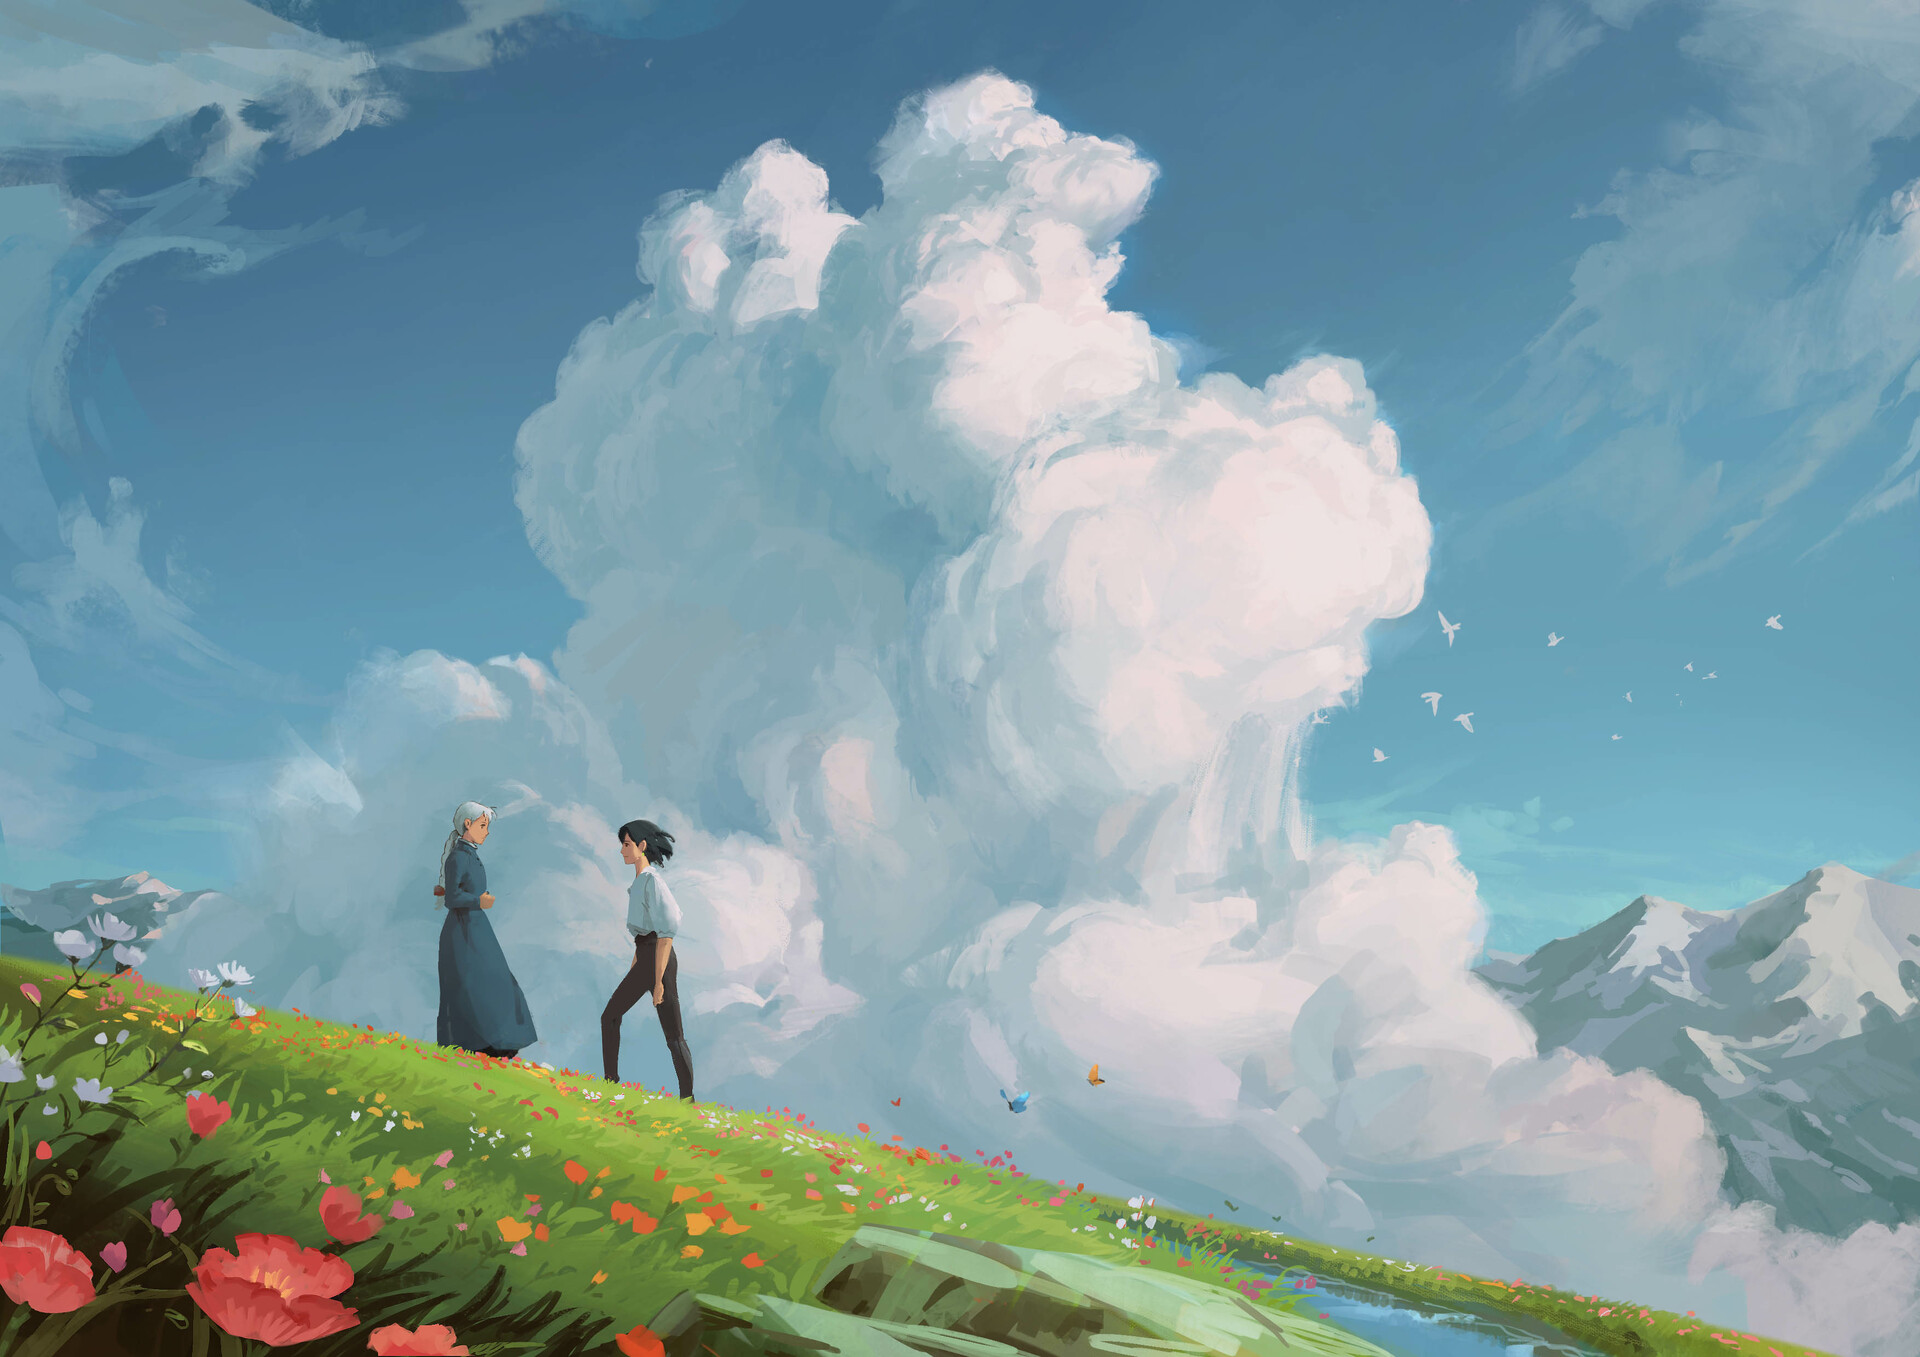 Artistic Boy Cloud Girl Howl 039 S Moving Castle 1920x1357